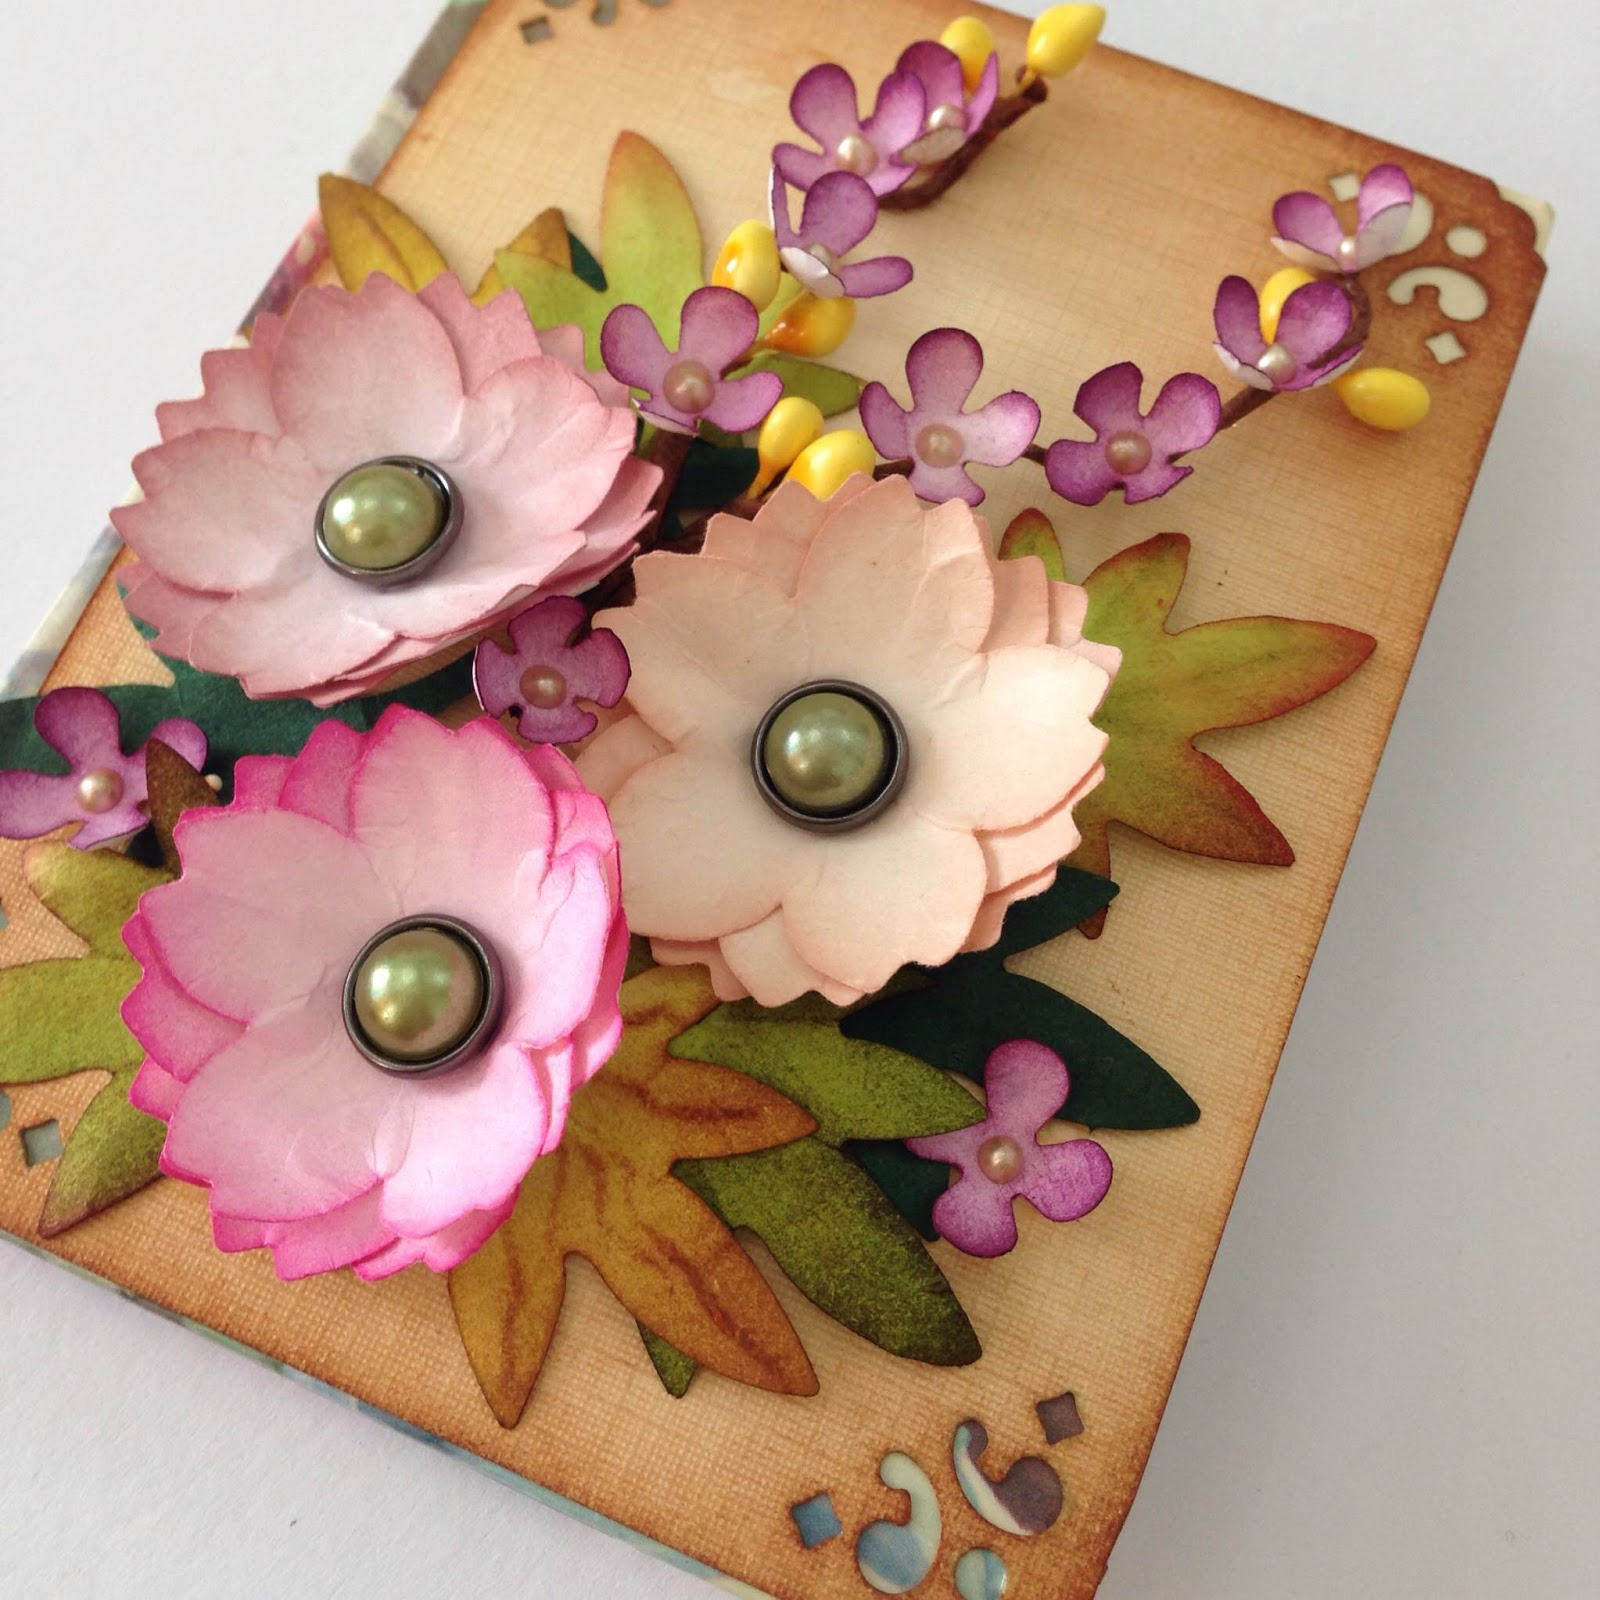 A4 Paper Flower Arts And Crafts To Make